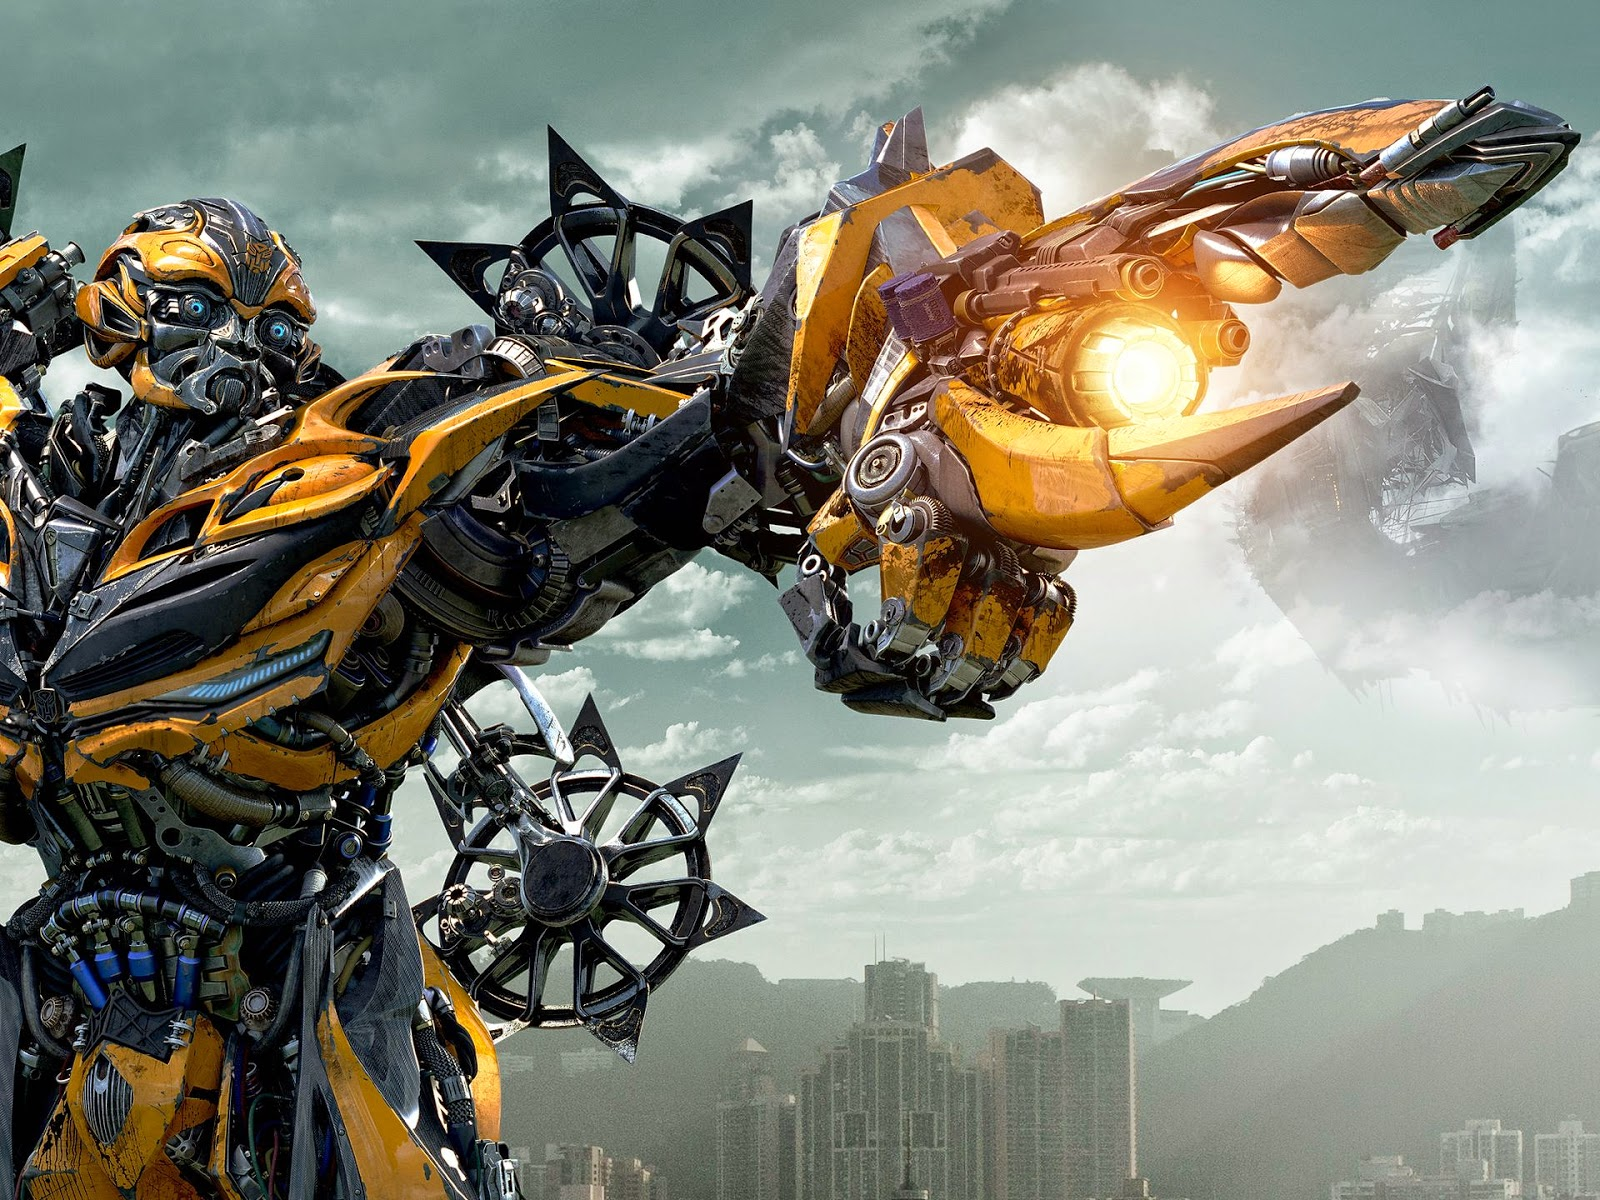 KUMPULAN GAMBAR FILM TRANSFORMERS 4 Ages Of Extinction Foto Mobil